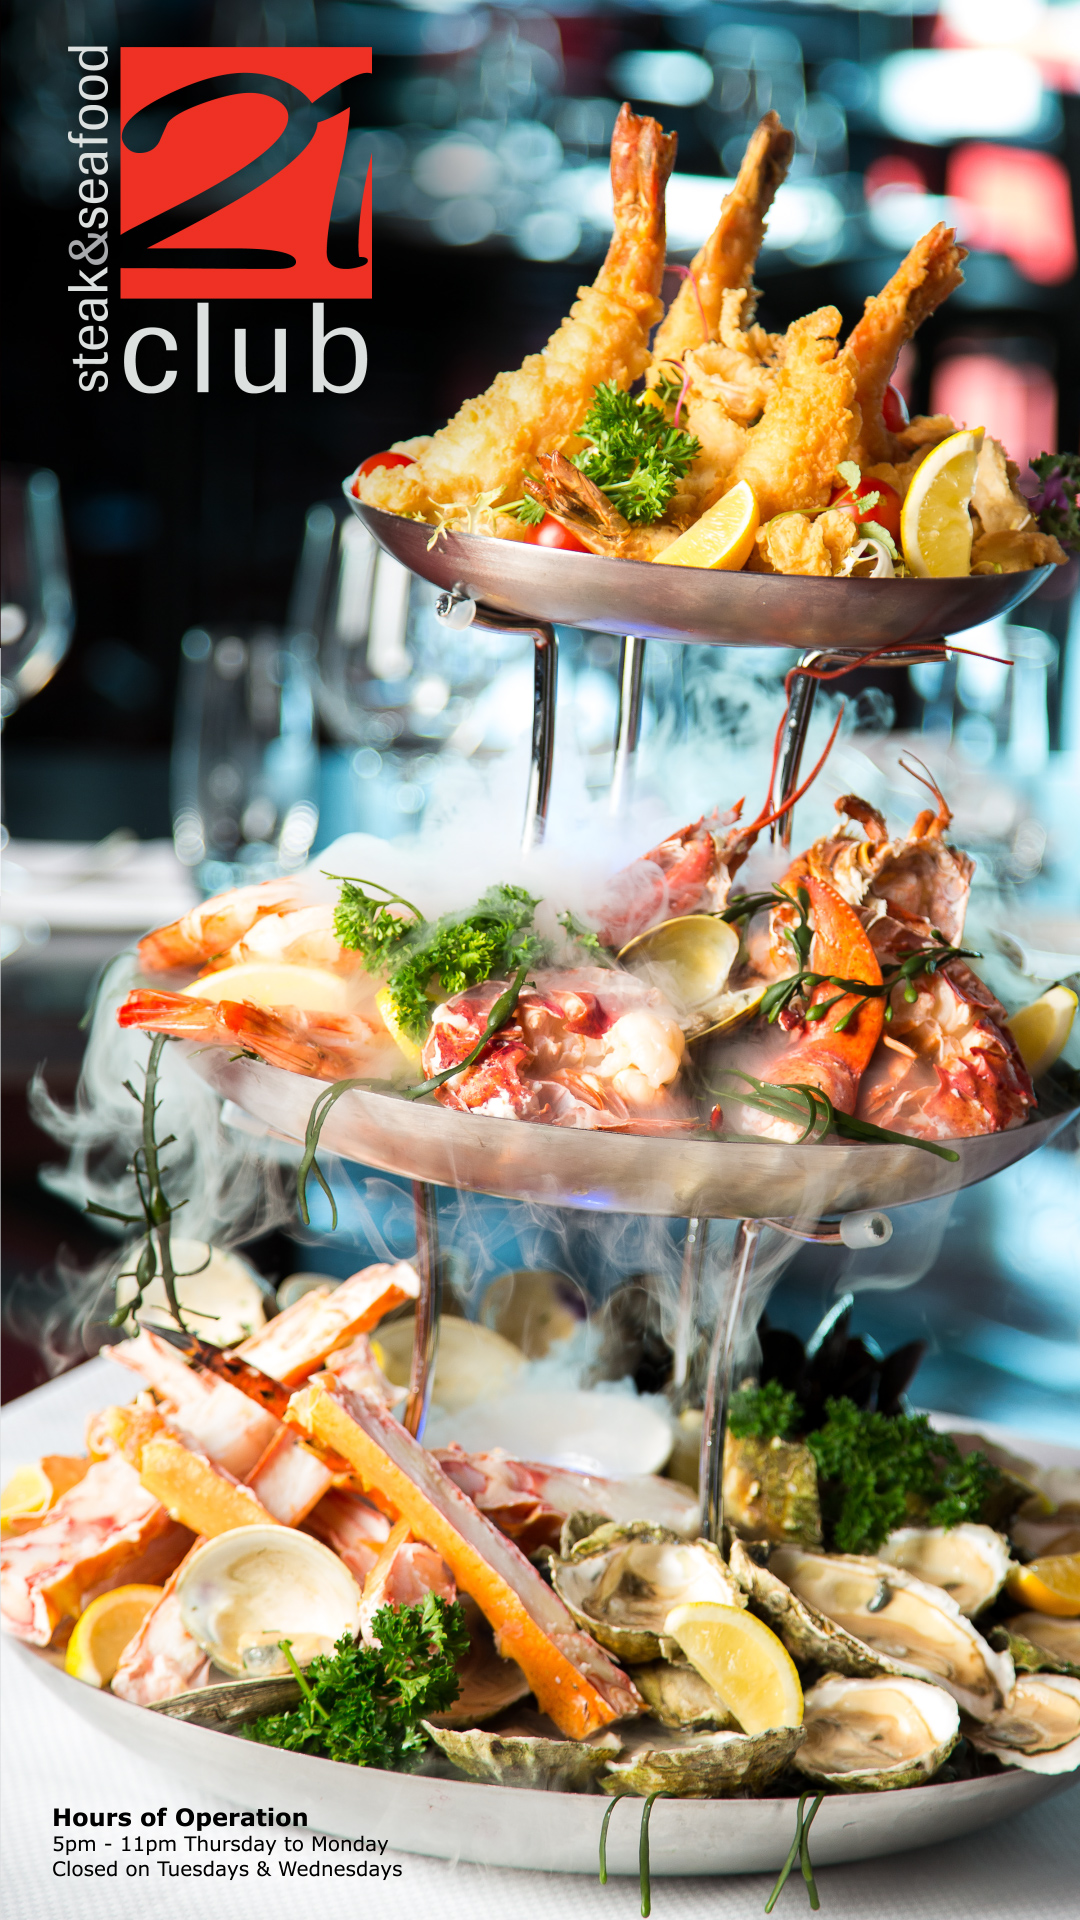 004 Seafood Tower.jpg